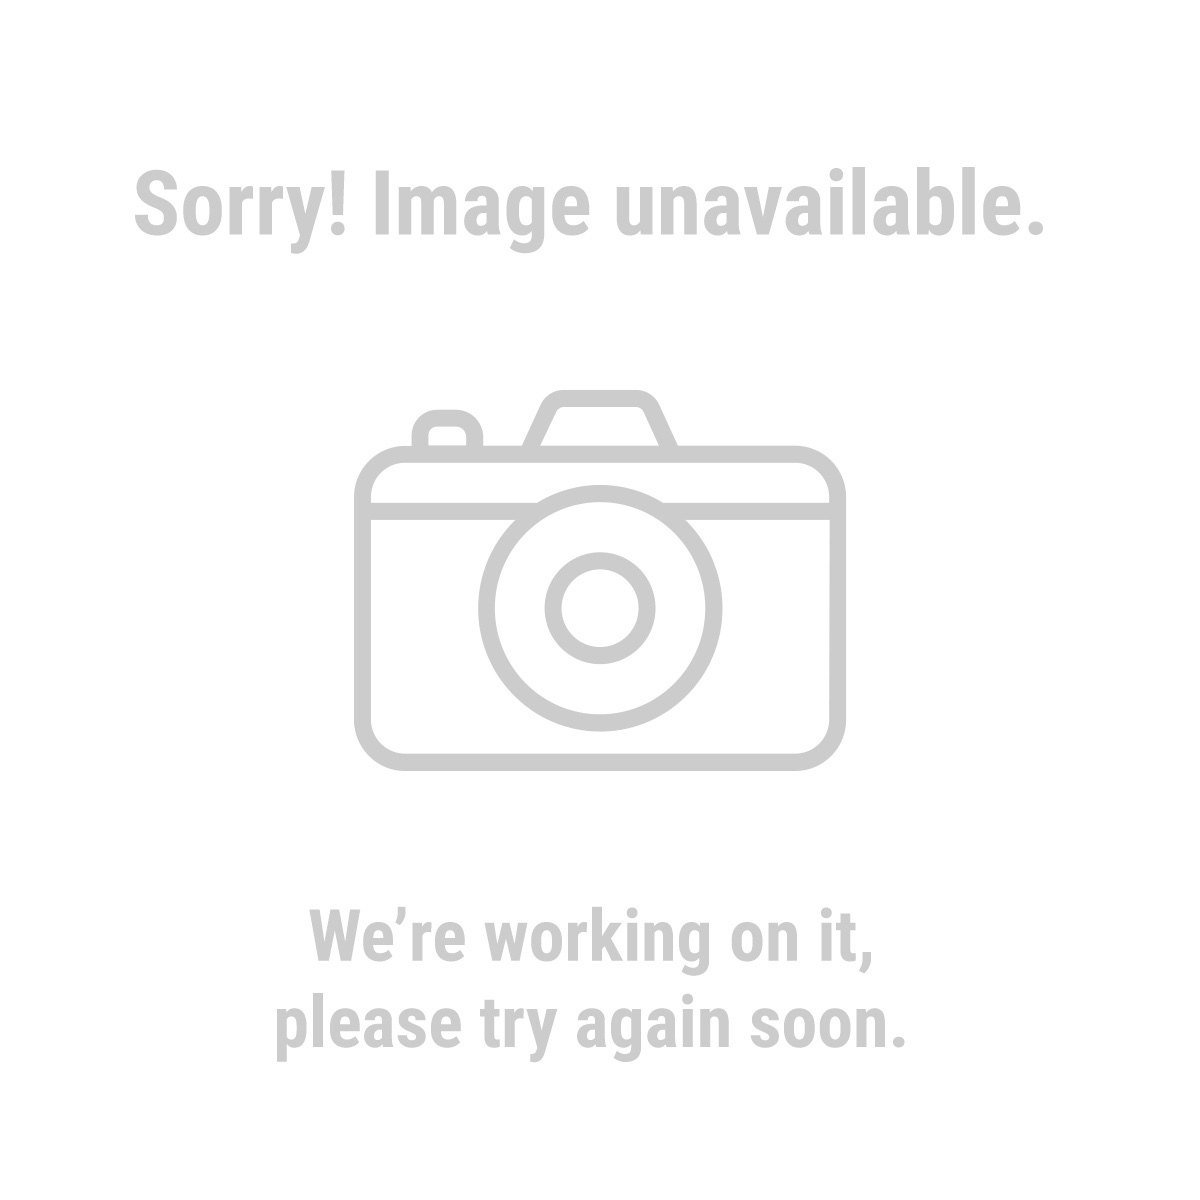 H-M 97184 Replacement Cart Tire and Wheel